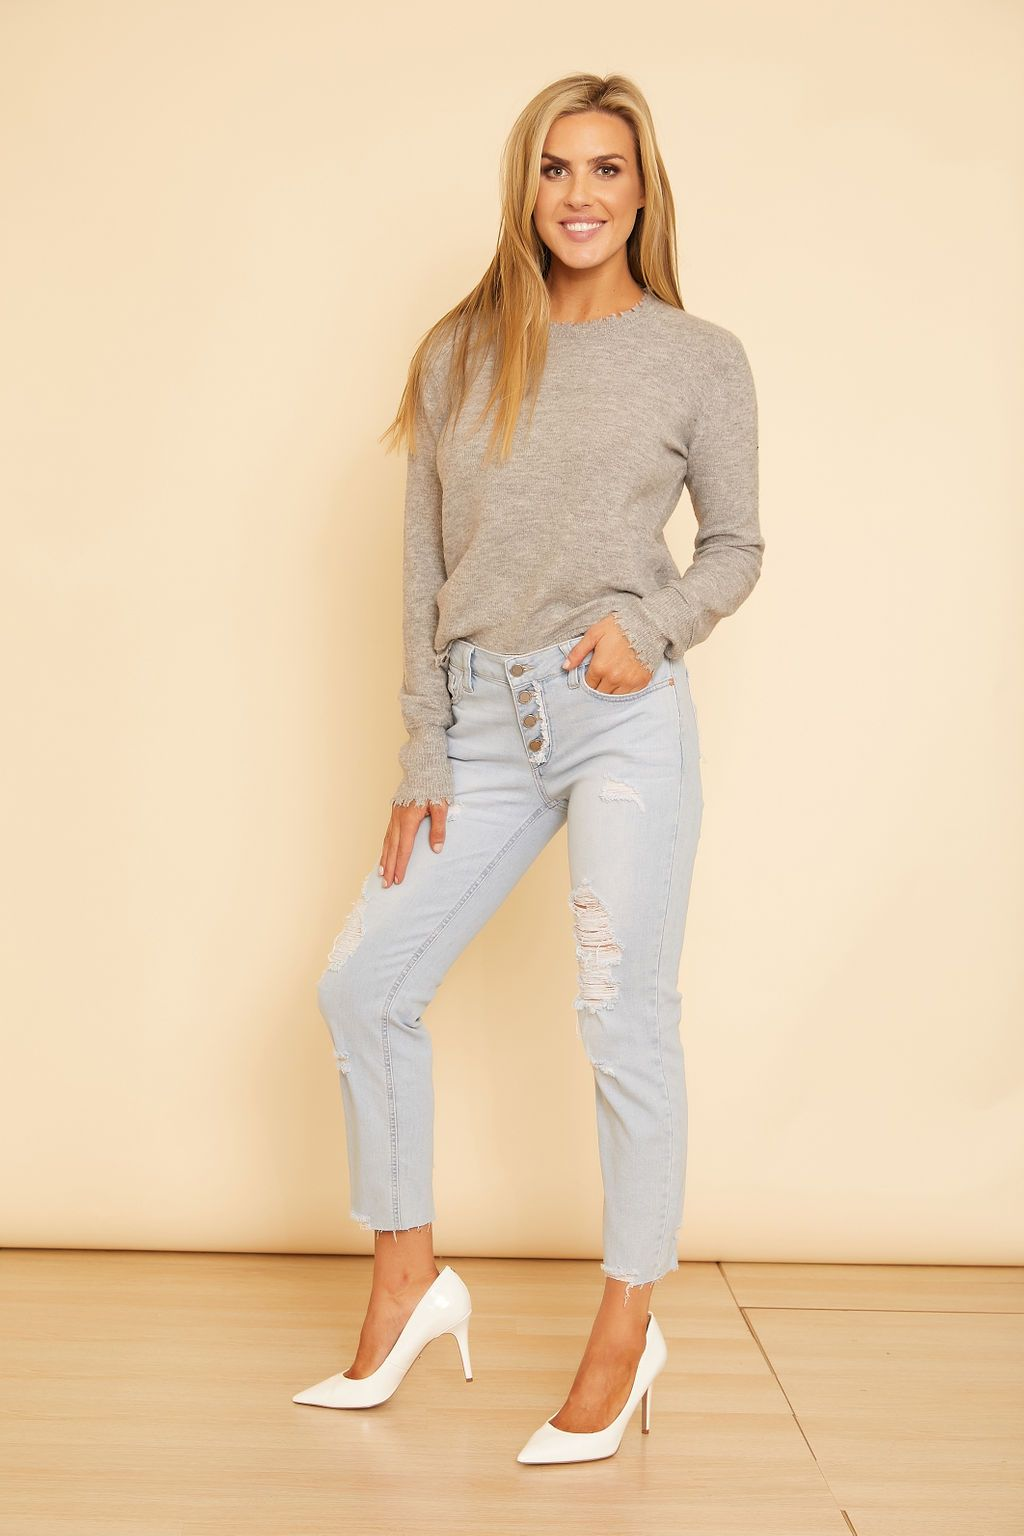 Savannah Button Down Distressed Denim - wearNYLA